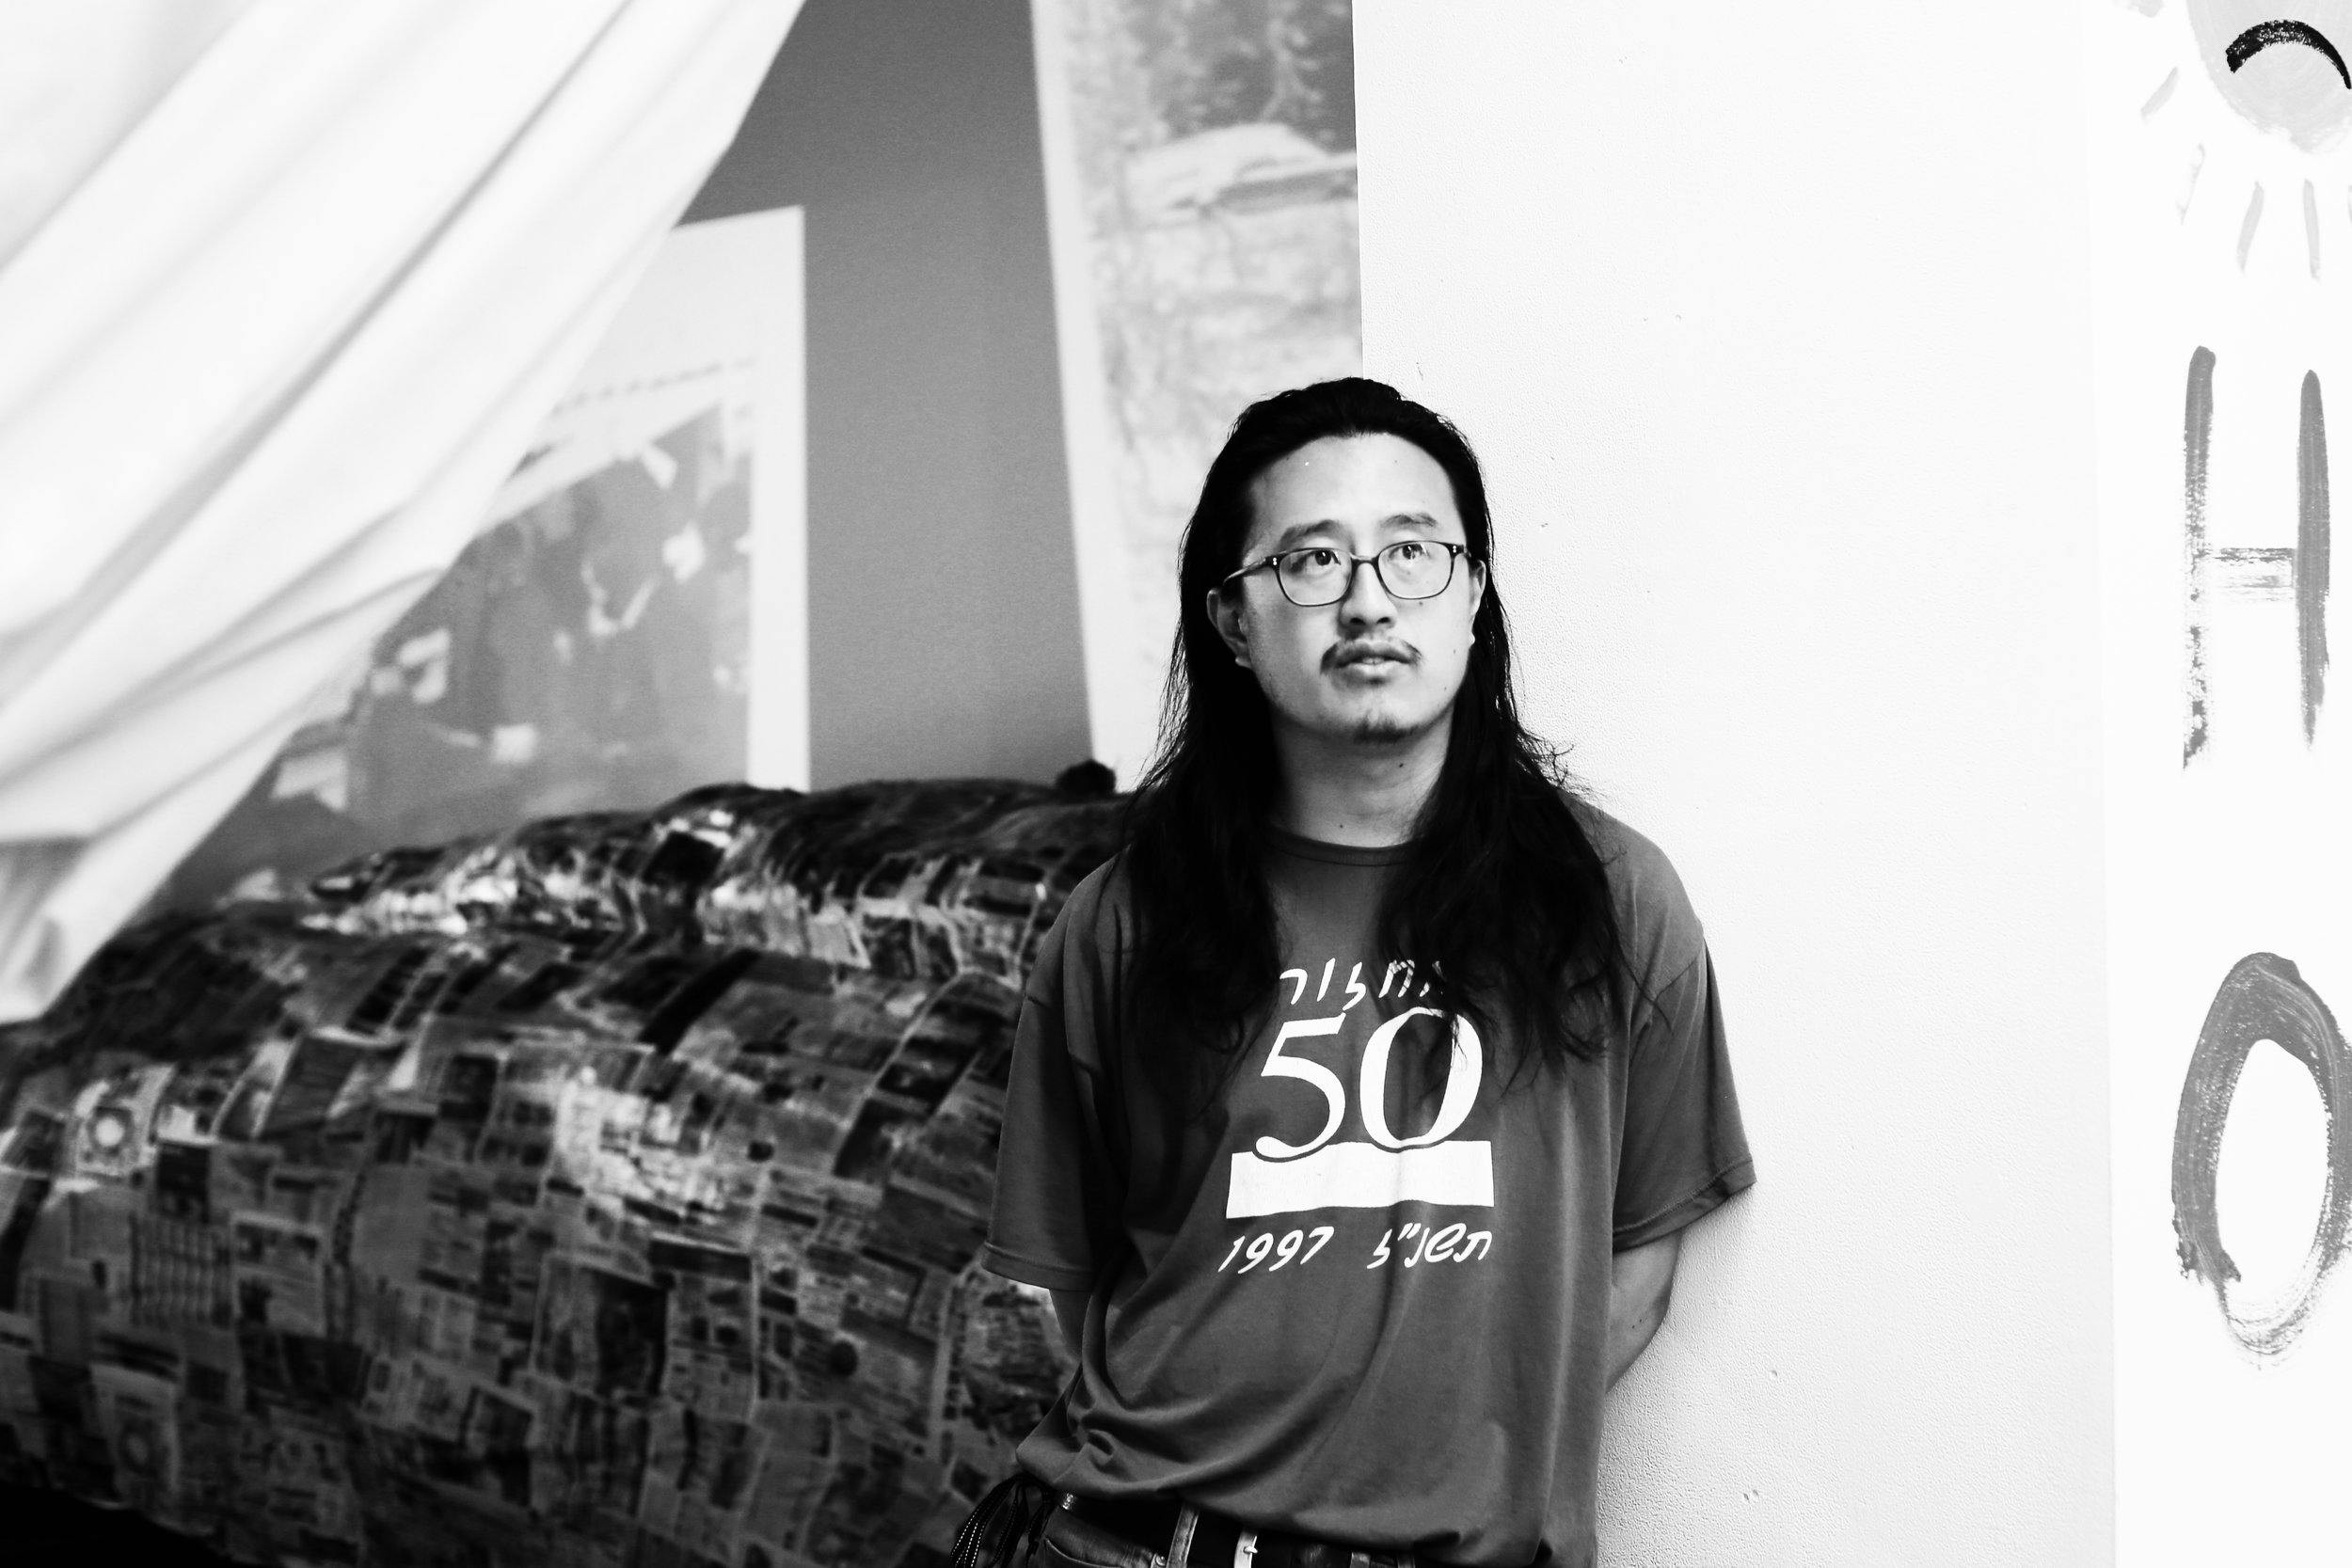 interview with jason phu - Liminal Magazine, November 2017